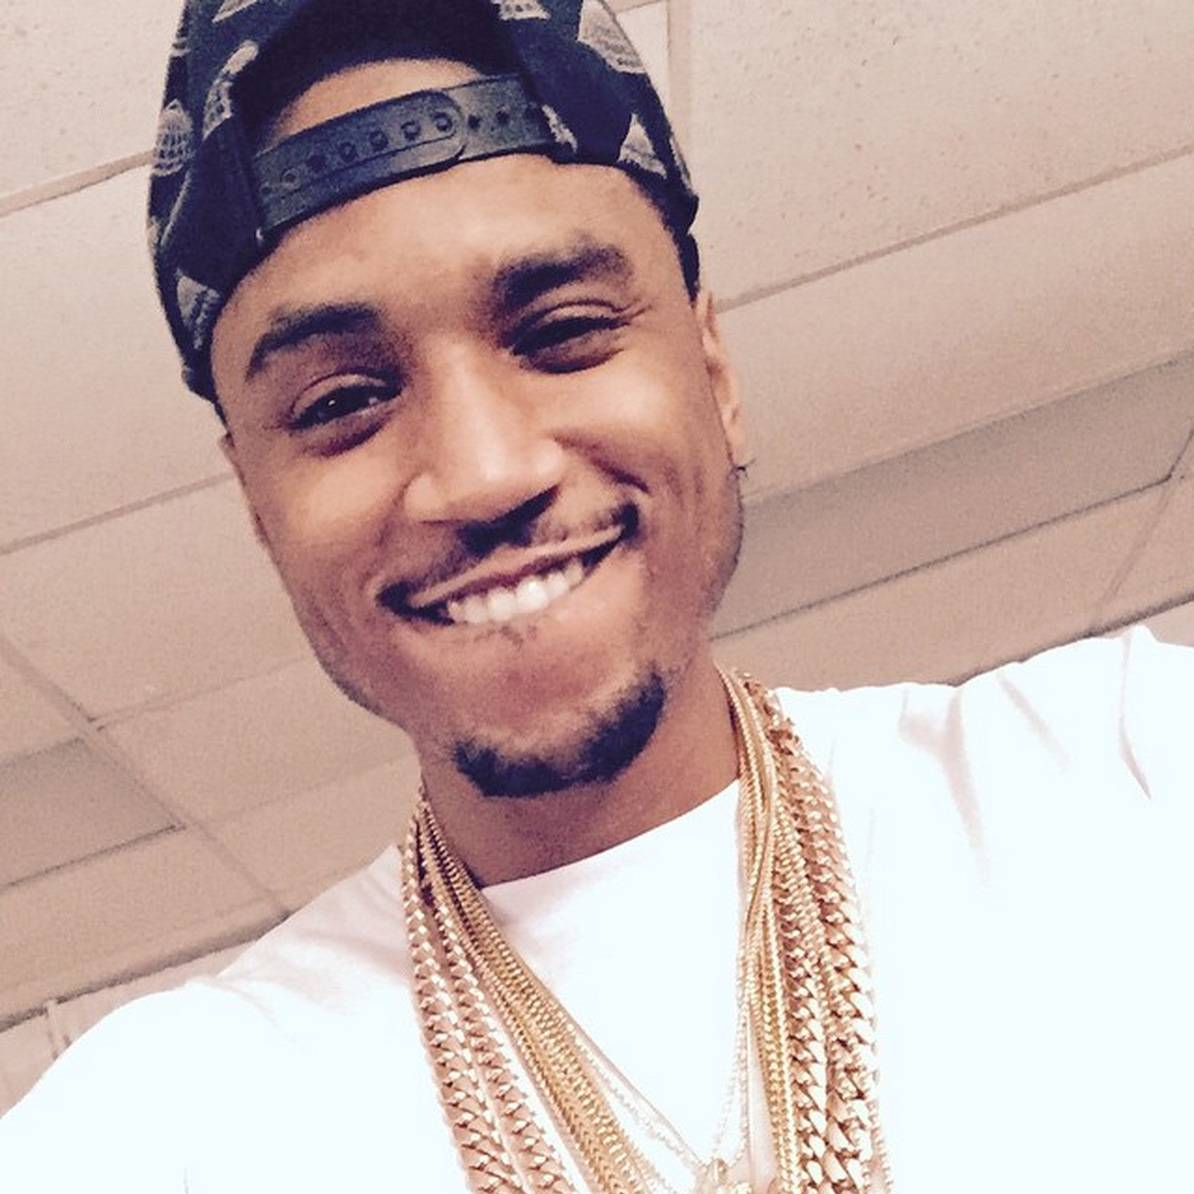 Hold Your Composure - Faces like this get people in trouble.  (Photo: Trey Songz via Instagram)